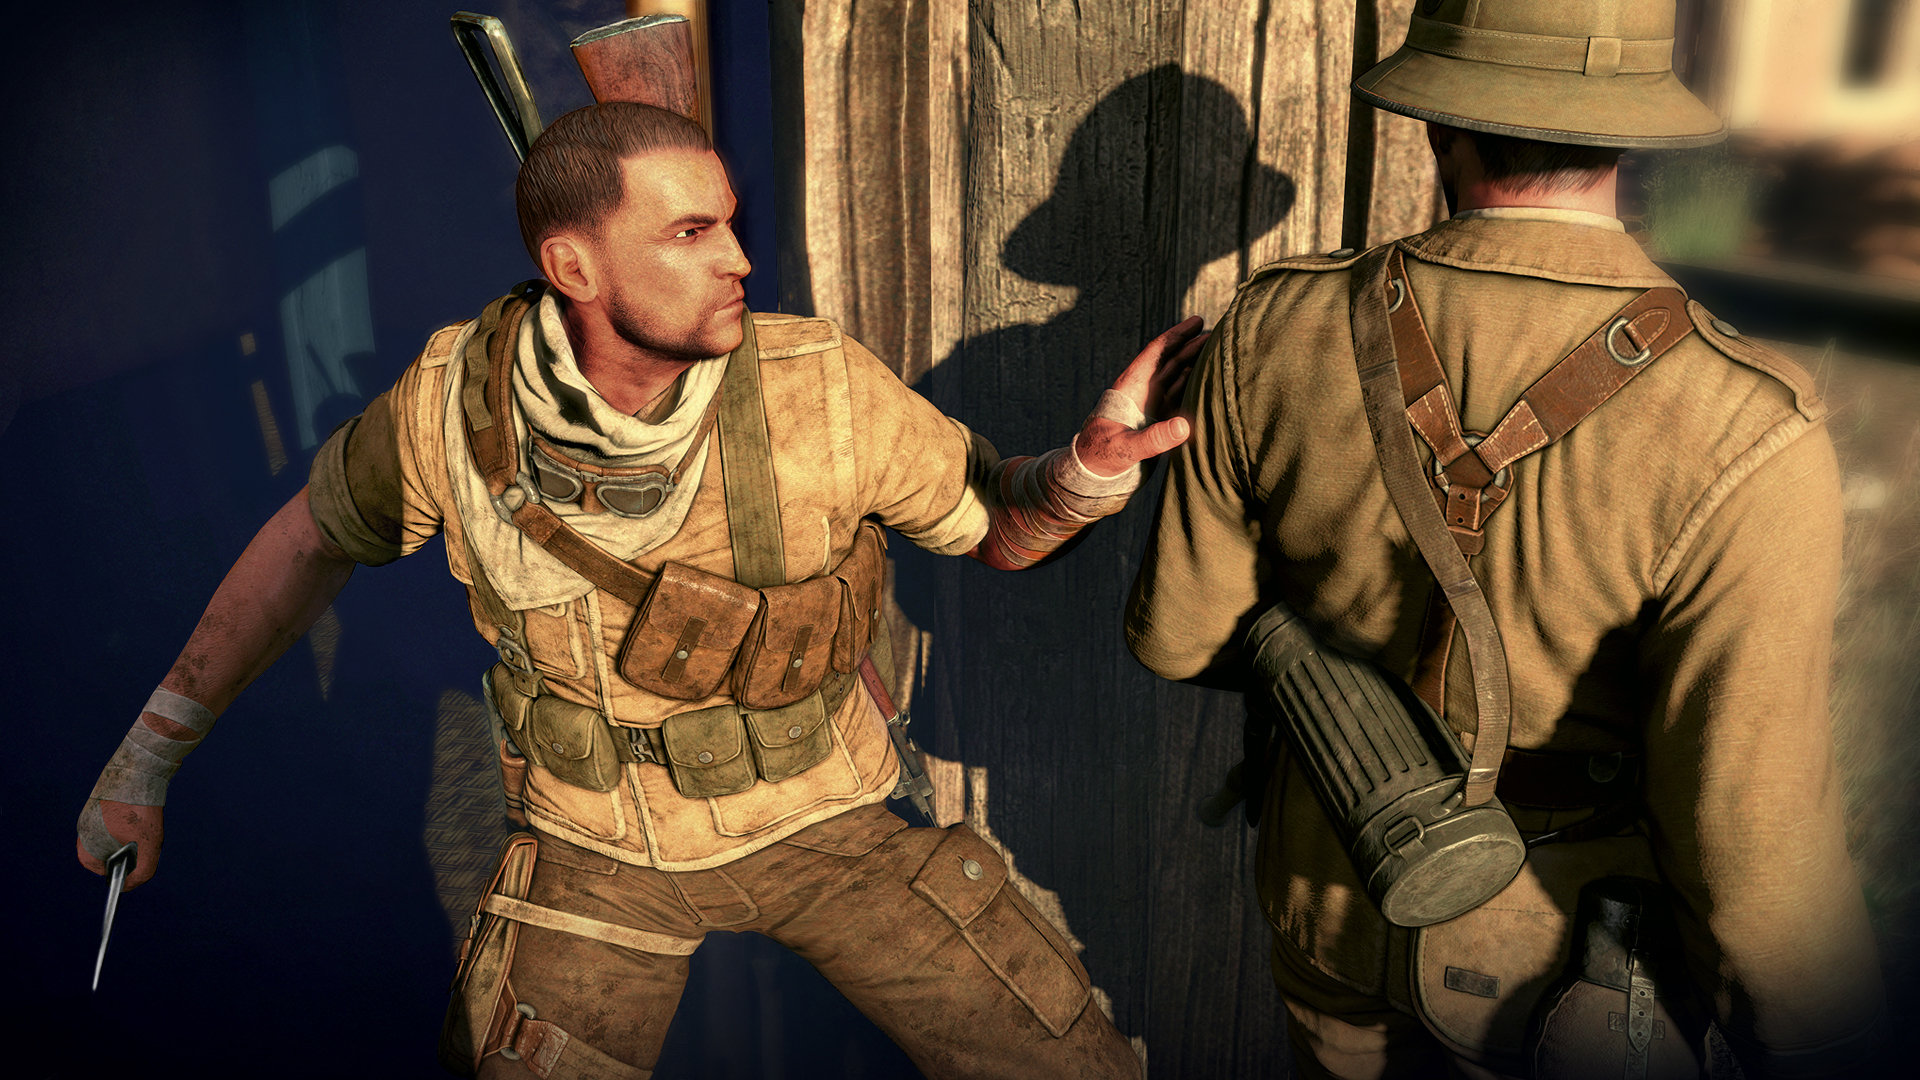 sniper-elite-3-screenshot-11-ps4-us-12ju